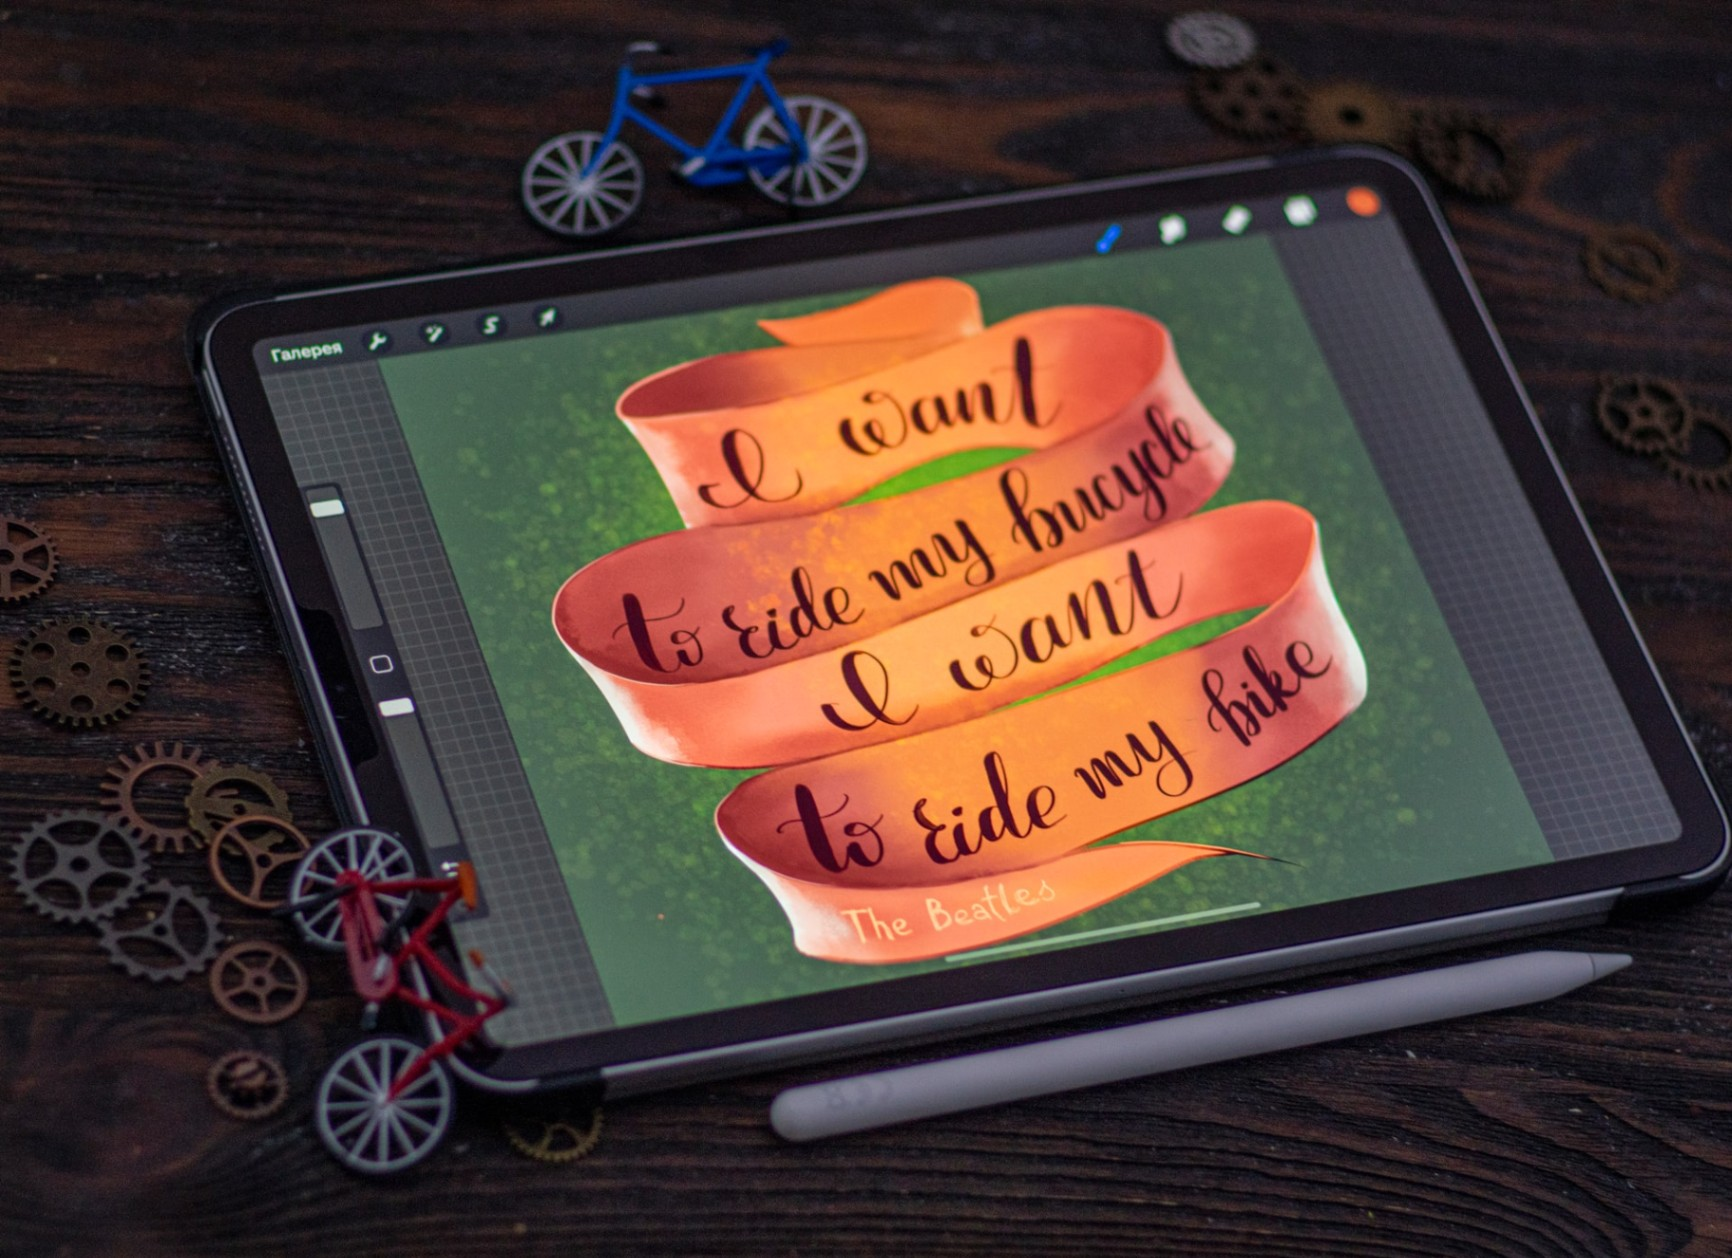 App to Make Amazing Drawings on a Tablet - Learn to Download